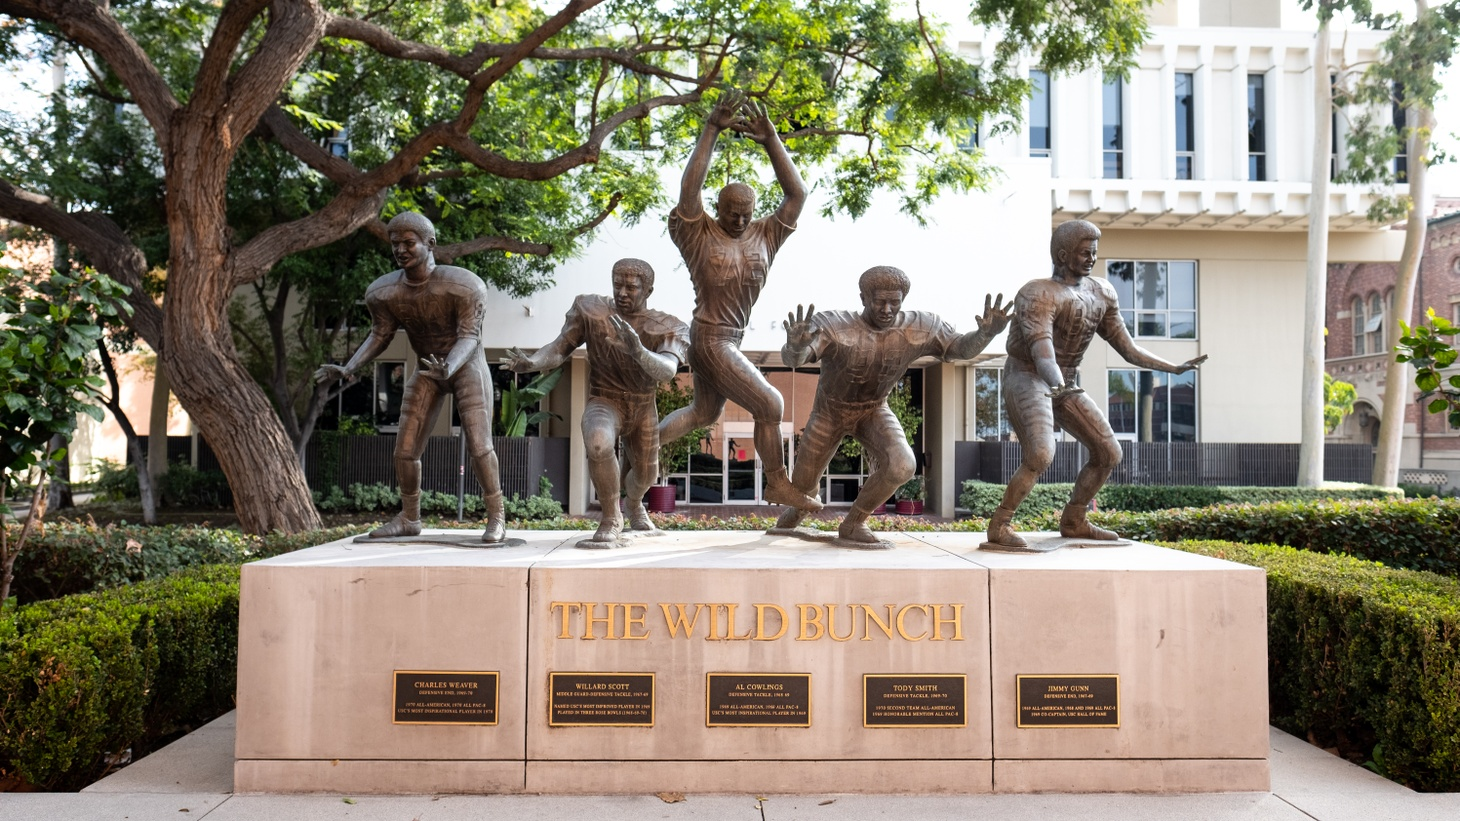 """Statues of the """"Wild Bunch"""" football players are displayed at USC. In a class action lawsuit filed in California, former college football and basketball players argued the NCAA artificially limits their compensation and violates federal antitrust laws by price-fixing the labor market."""